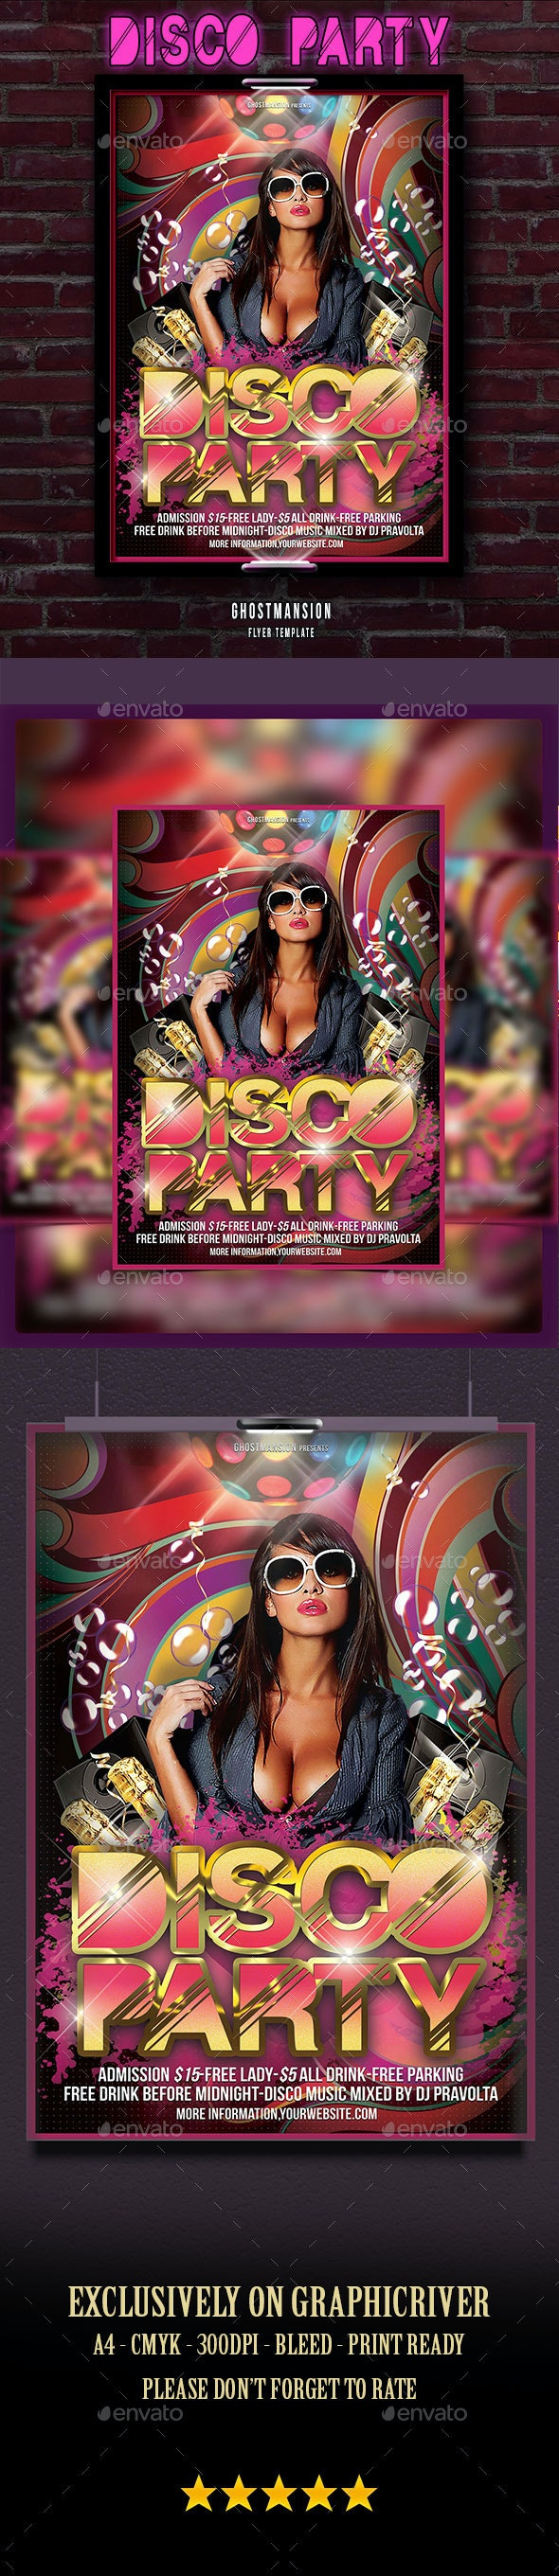 Disco Music Poster Flyer Template - Clubs & Parties Events